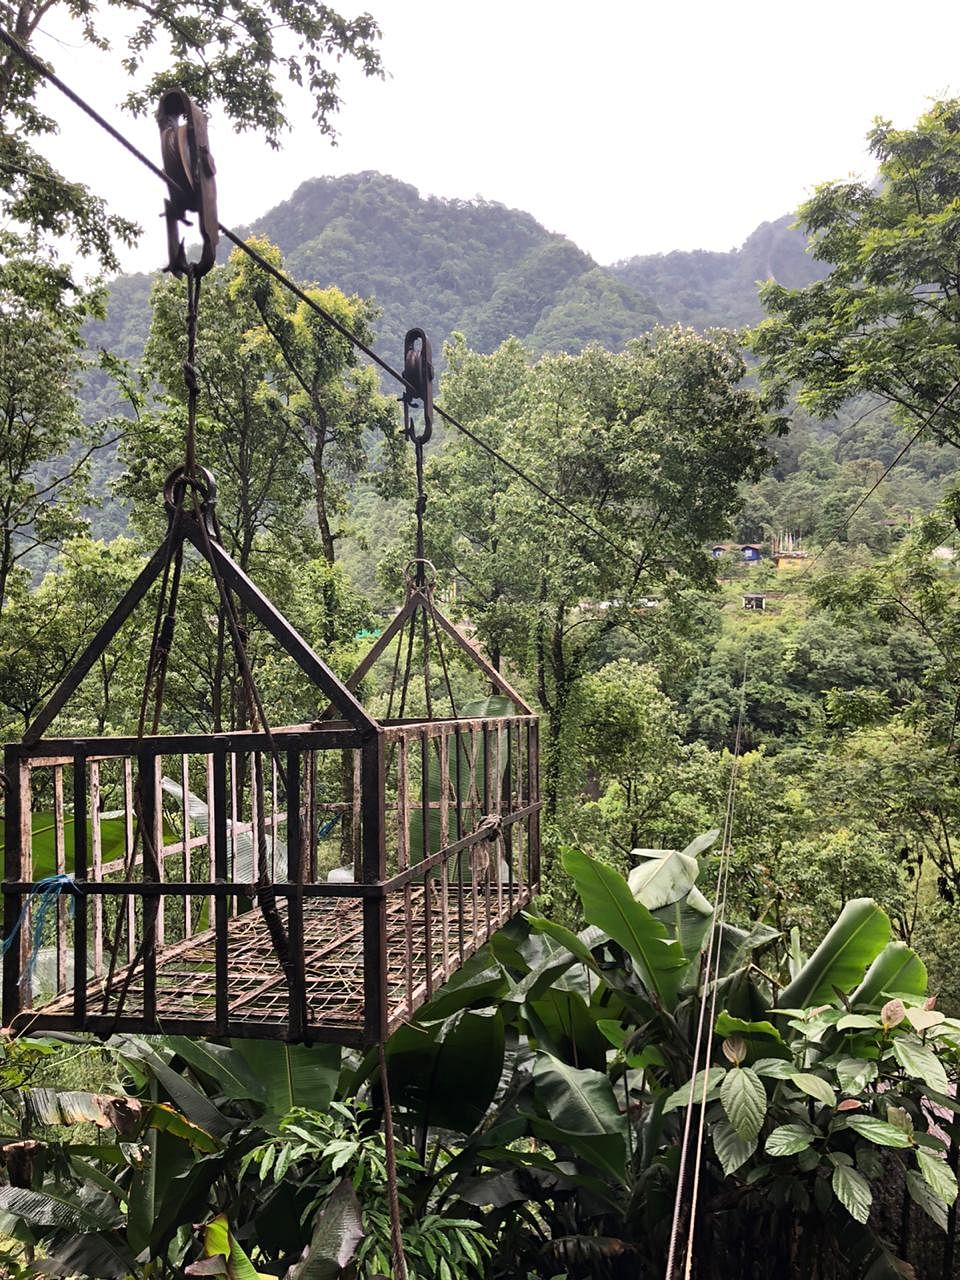 The ropeway was set up by the Public Works Department in 2002 with one end near 6th Mile, Tingvong, and the other at Kayem over the Kanaka river and has a load capacity of around 50 kg